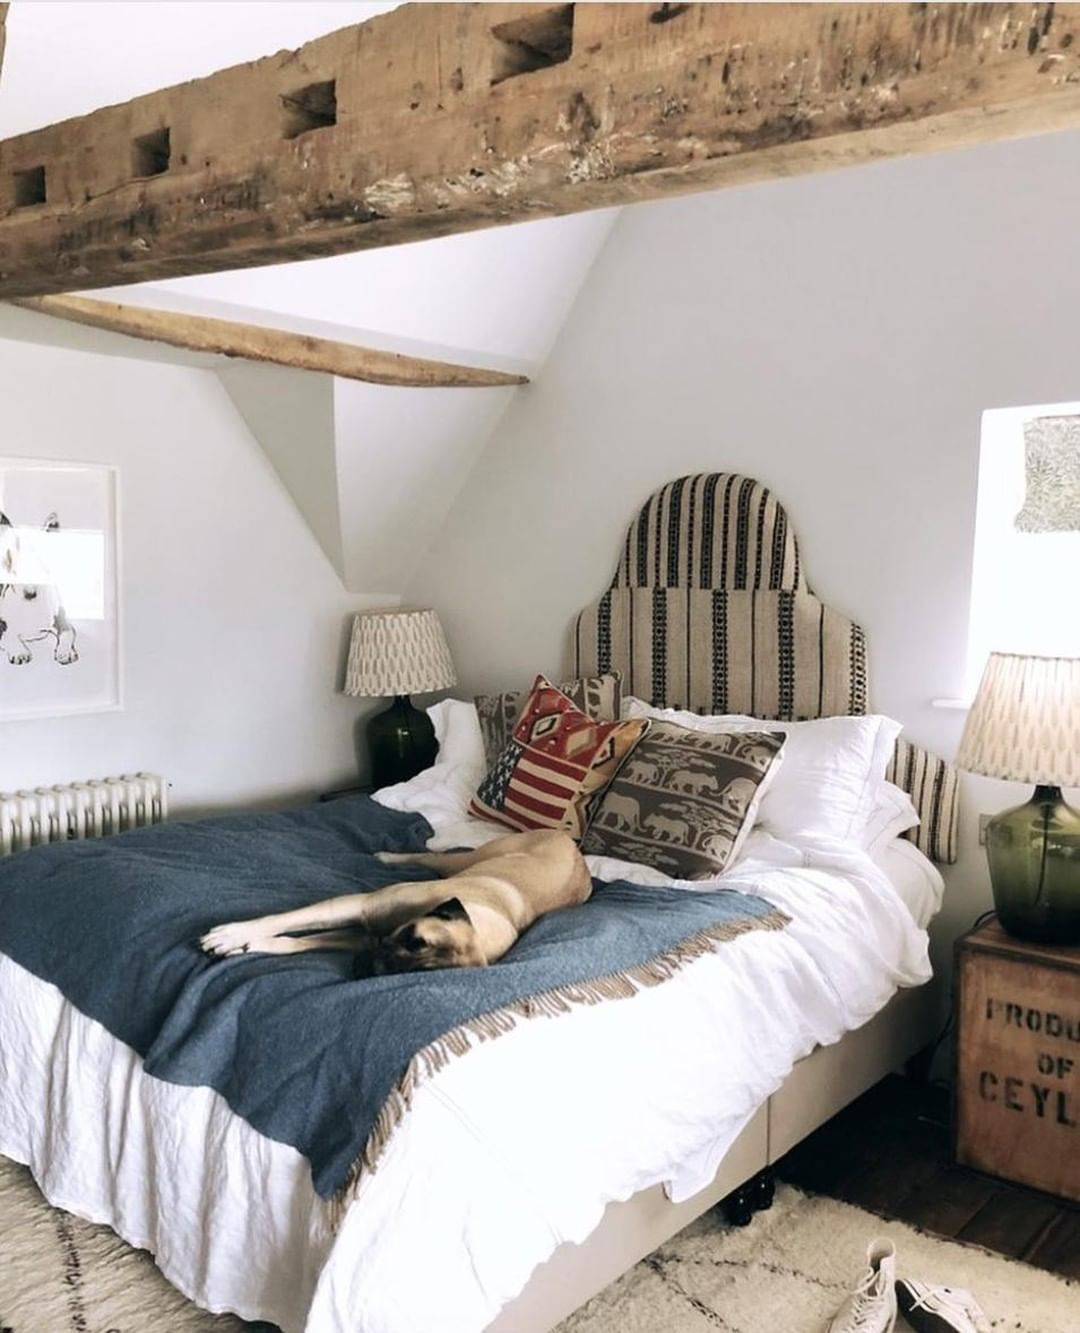 Today S Mood One Of Our Four Legged Friends Getting Comfy In Farmhouse Loft Photo By Boho